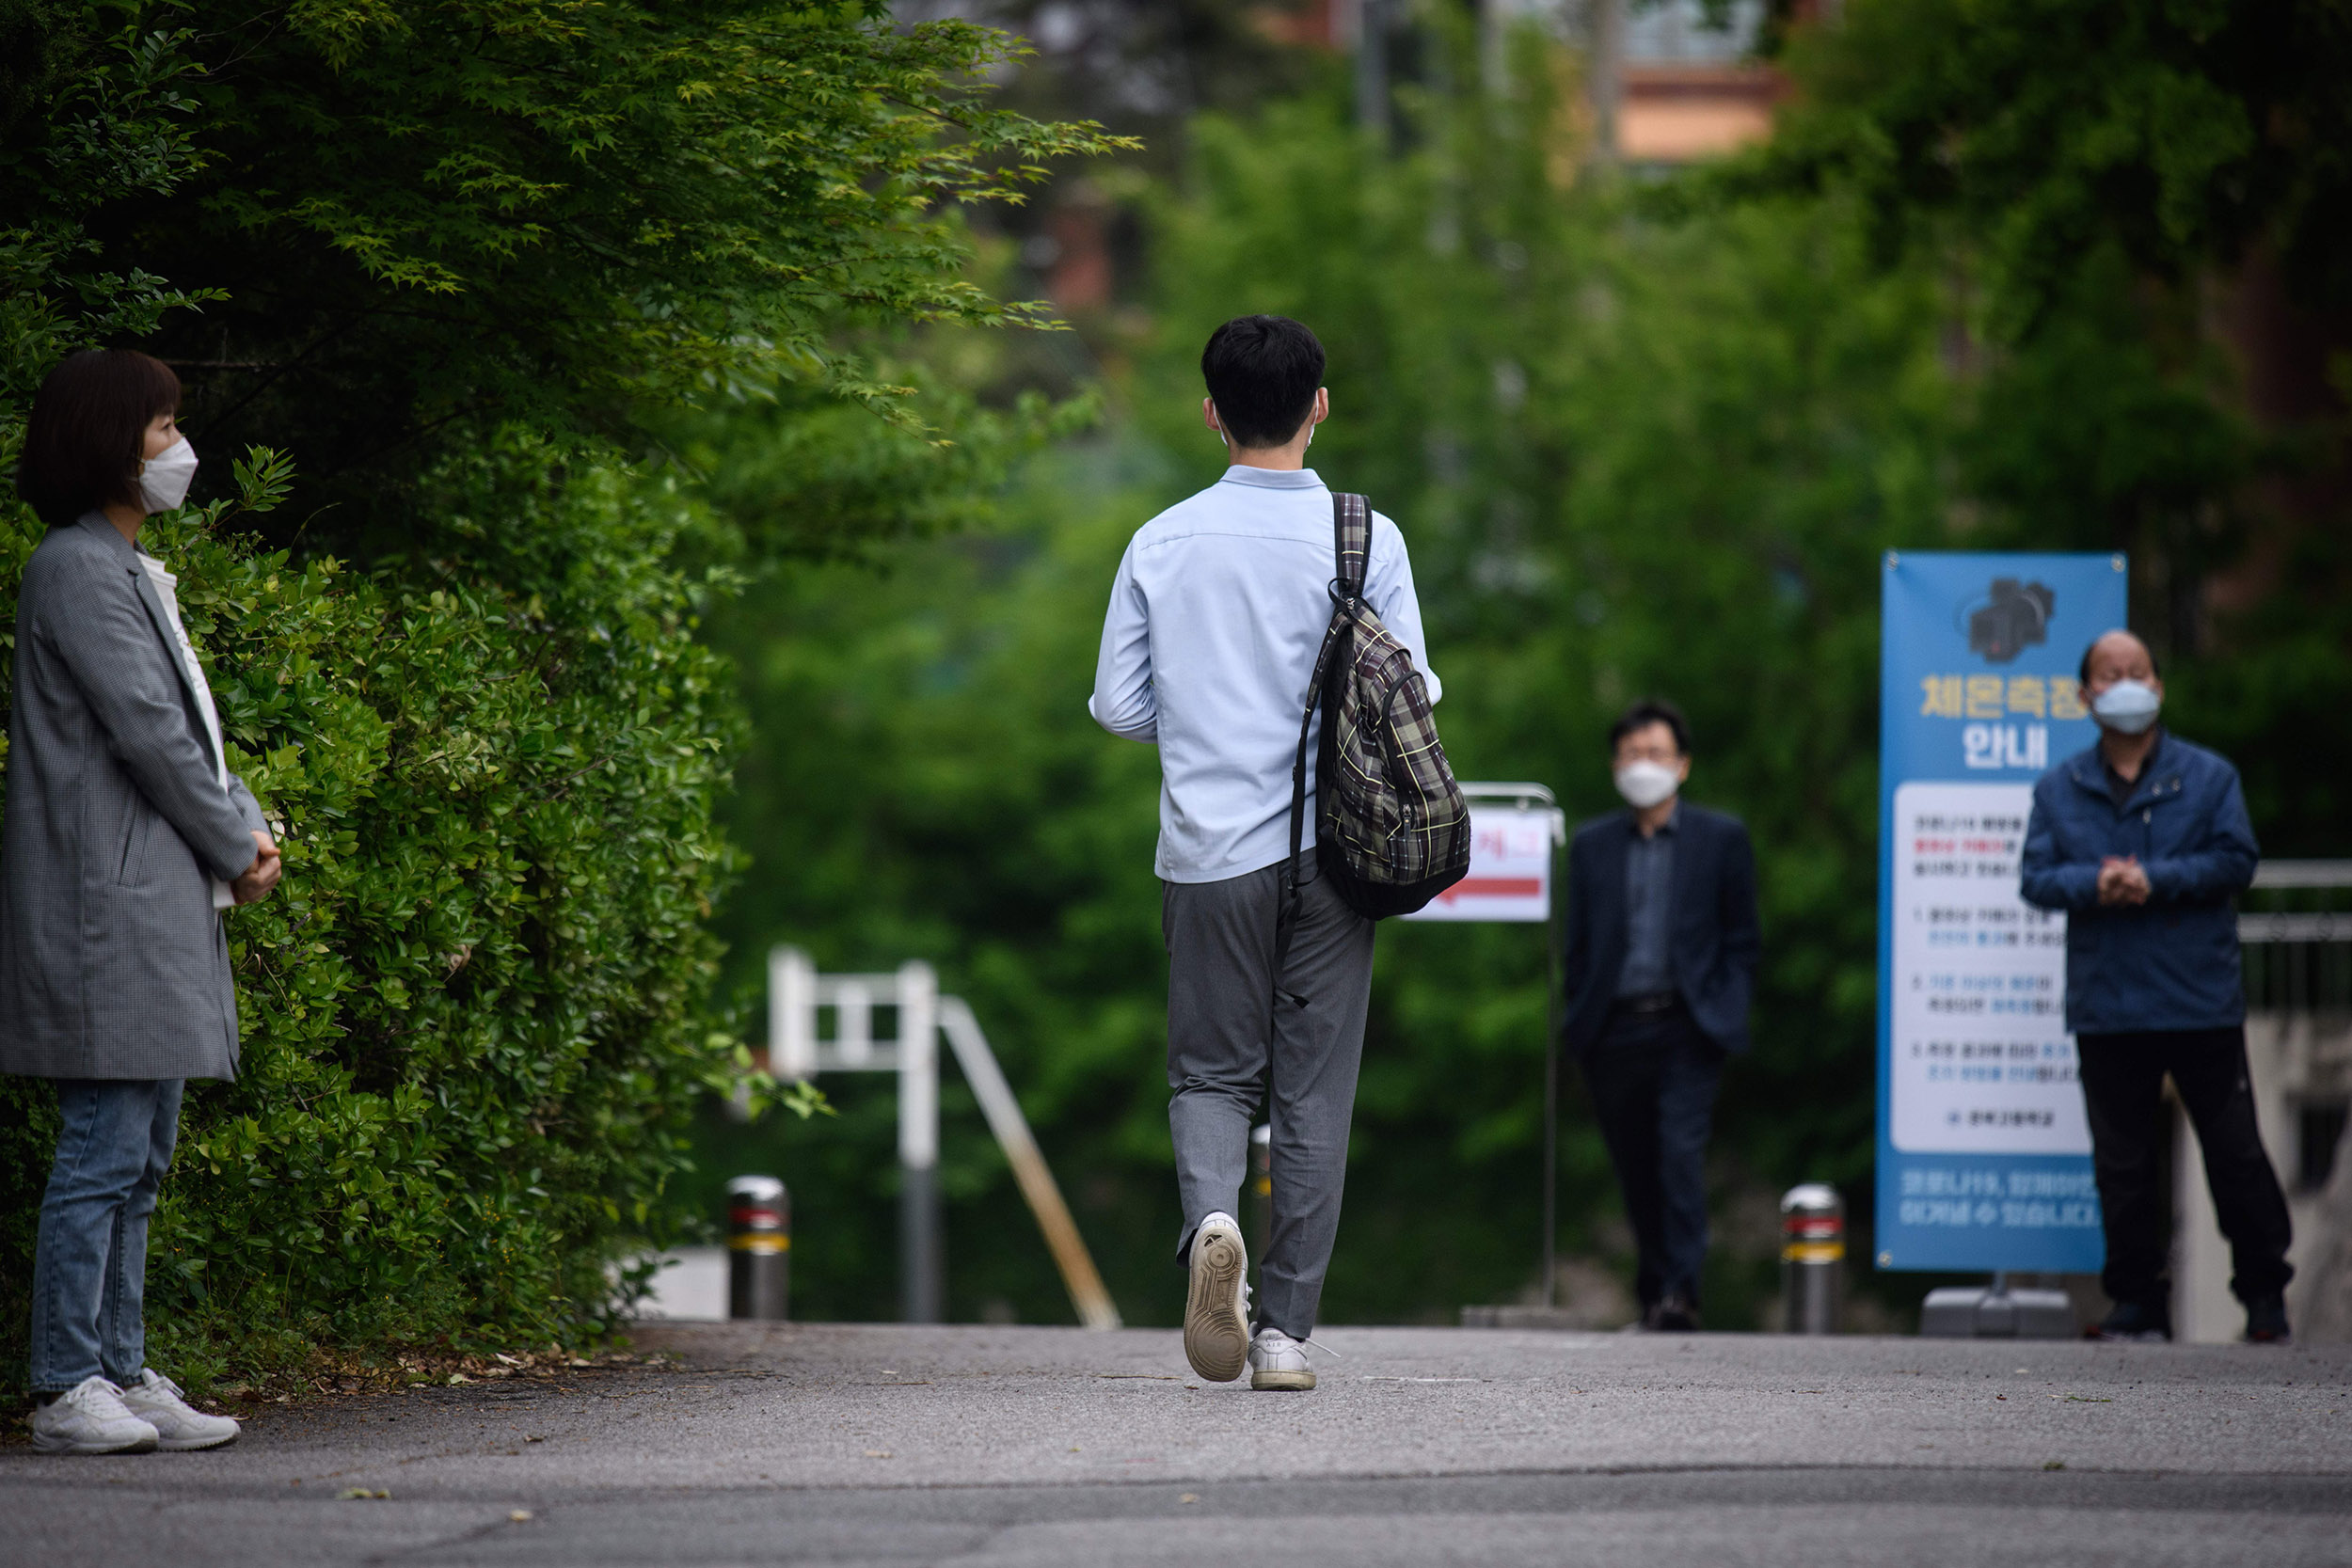 A student arrives at a high school in Seoul, South Korea, on Wednesday, May 20.